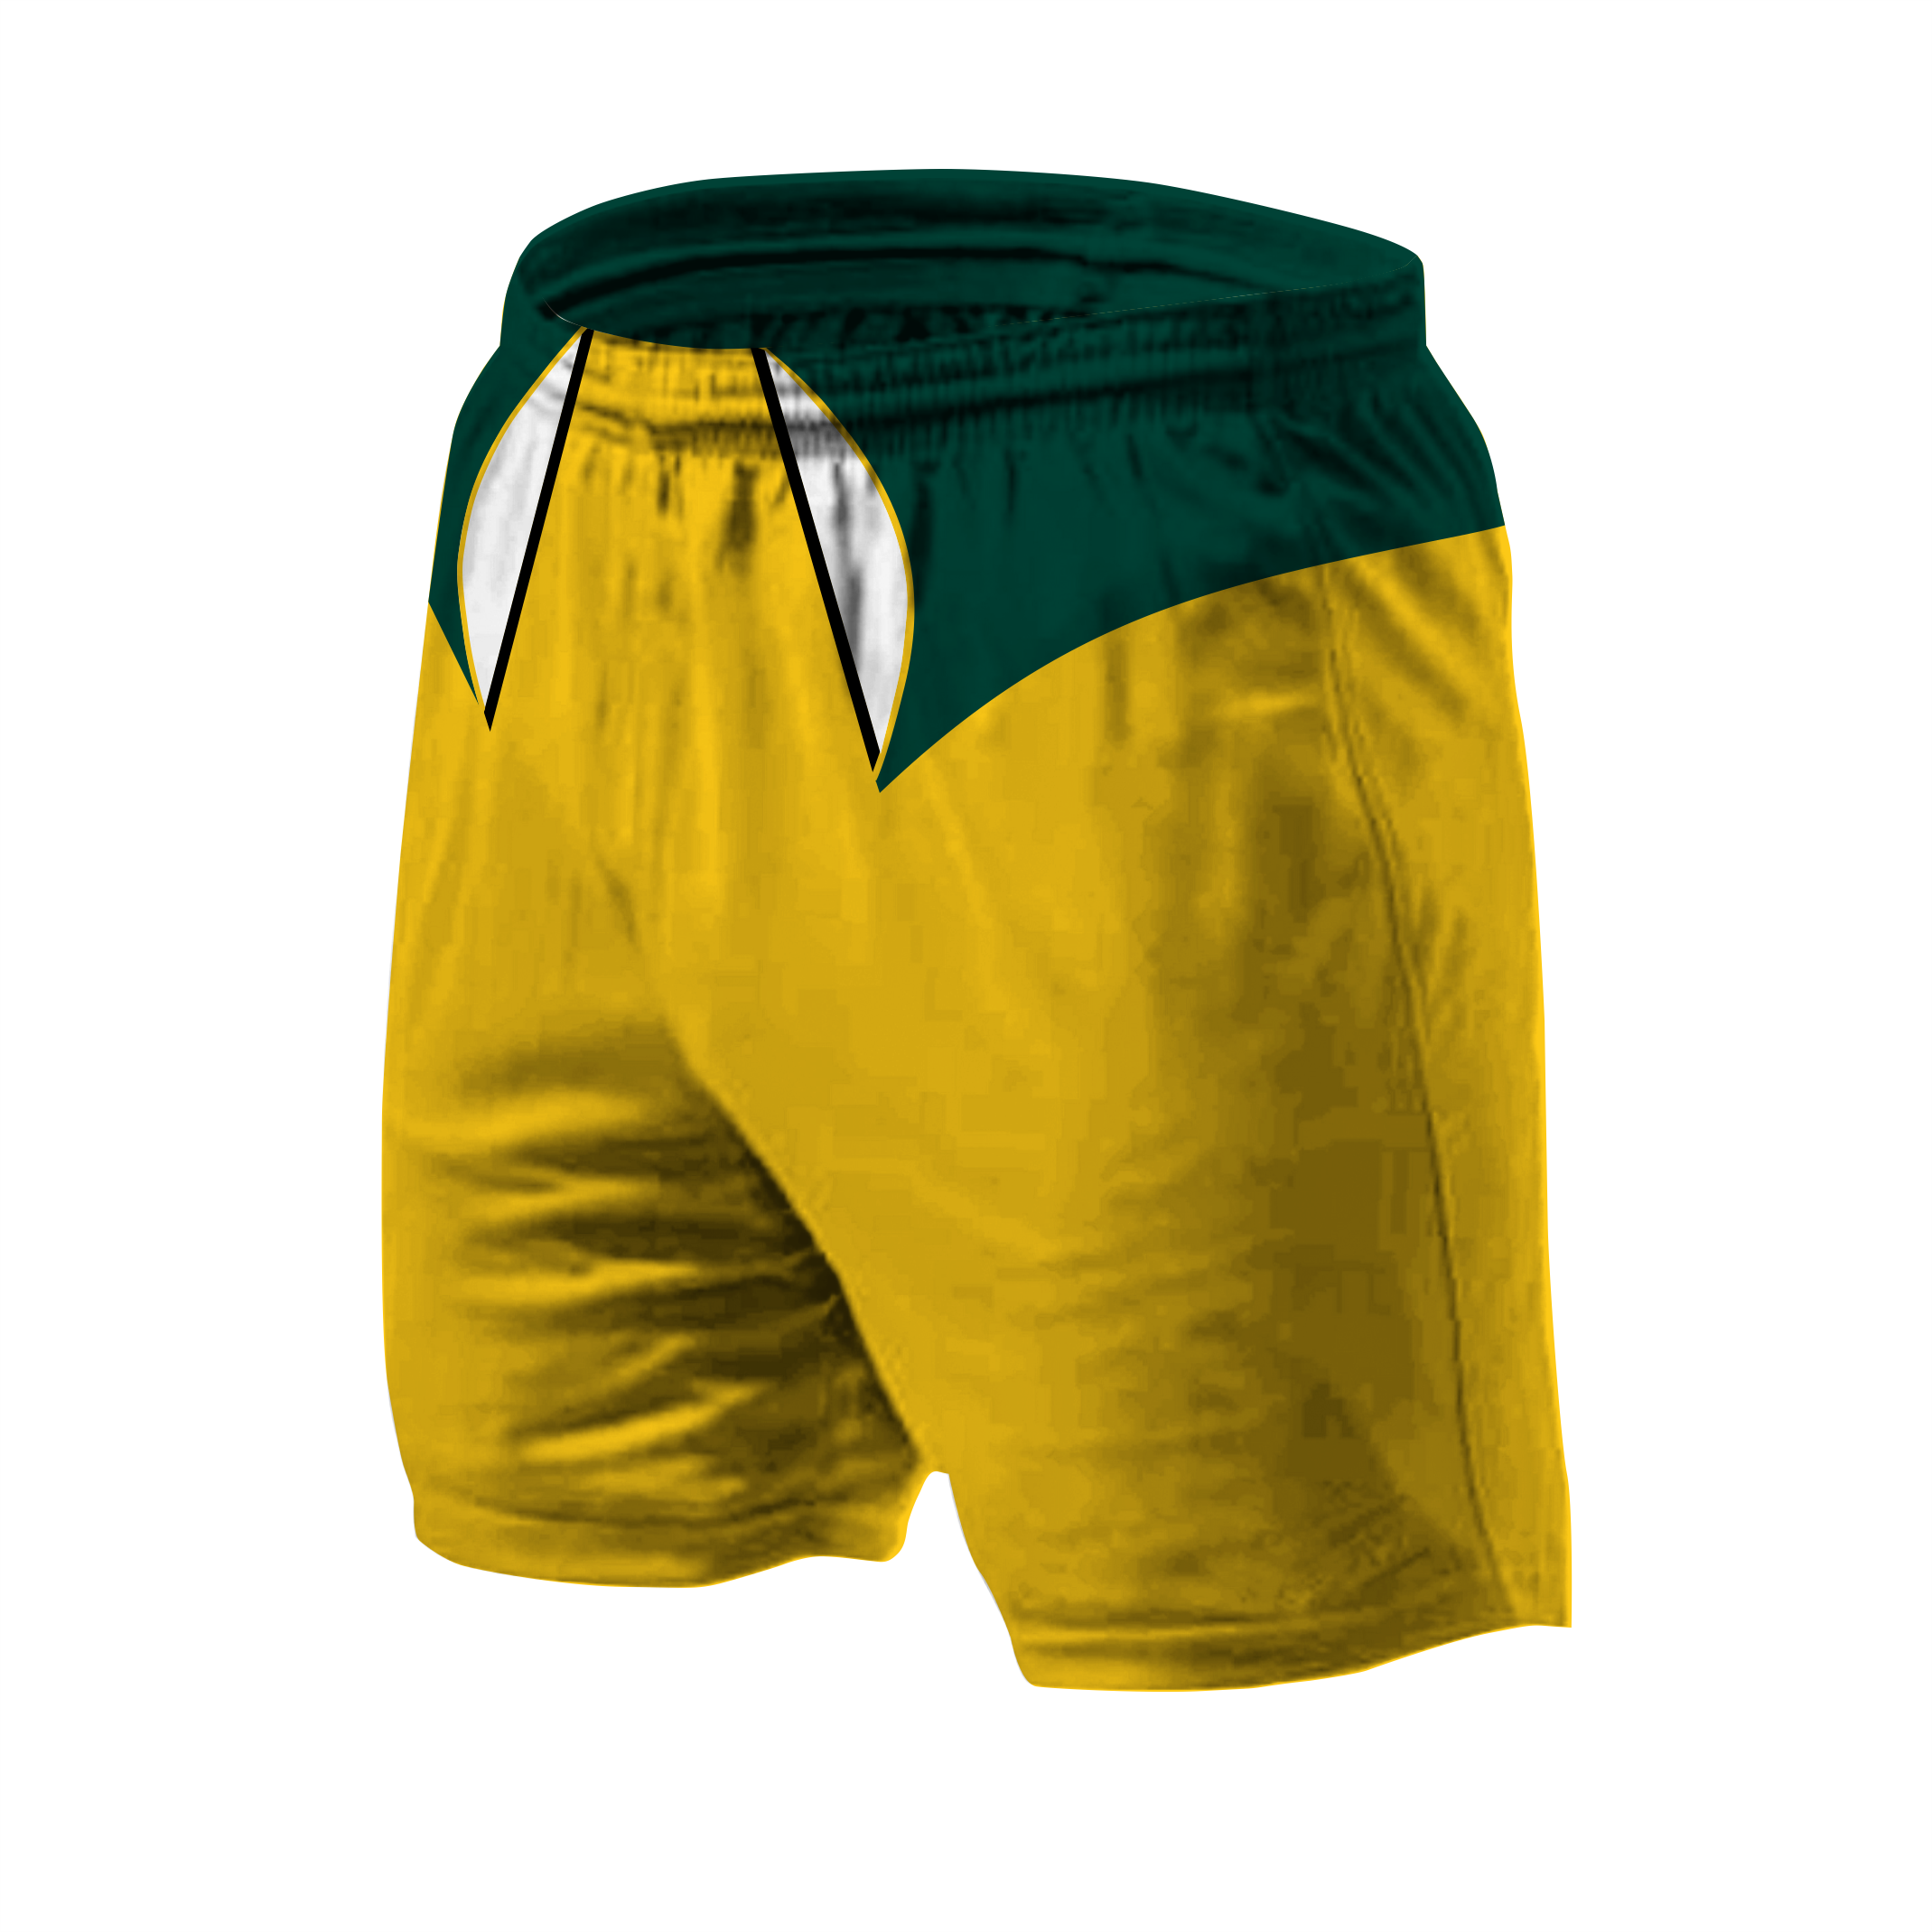 Panelled Zuco shorts - Mick